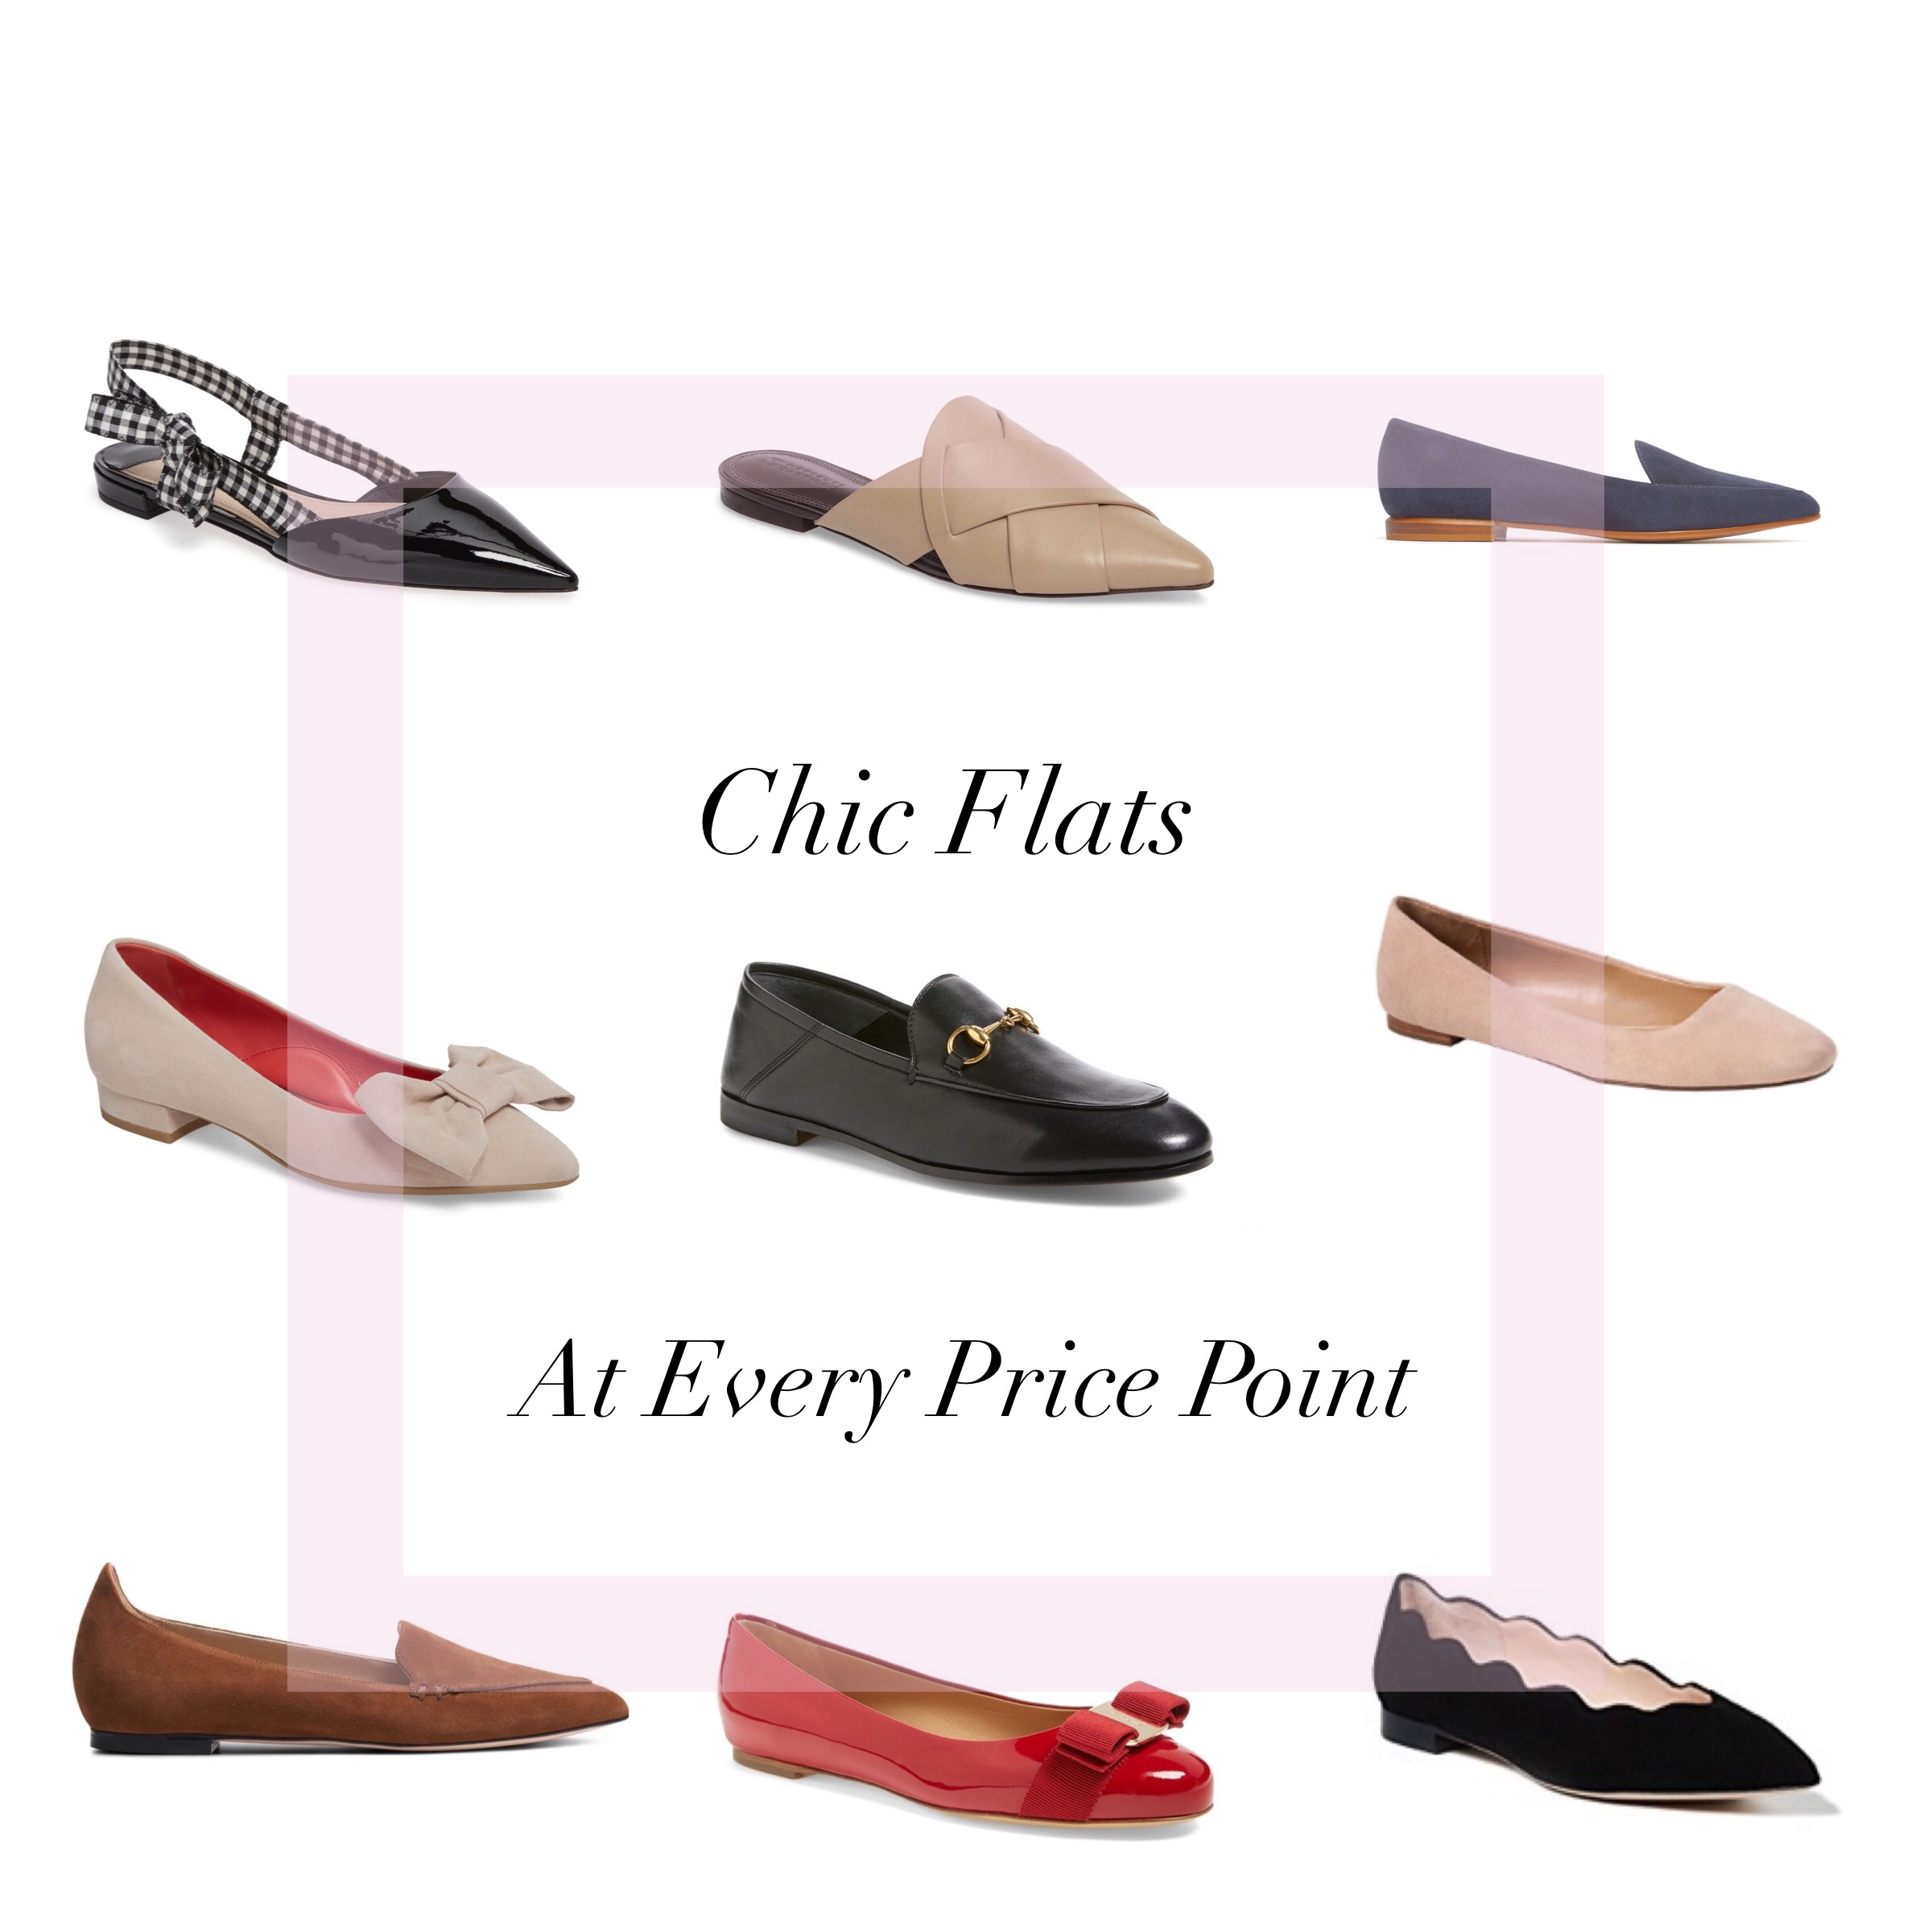 a829f69f1993 Here's another rendition of 'you ask, I answer.' A reader asked if I would  round up some 'chic flats' that could be worn casually or to work. The only  ...